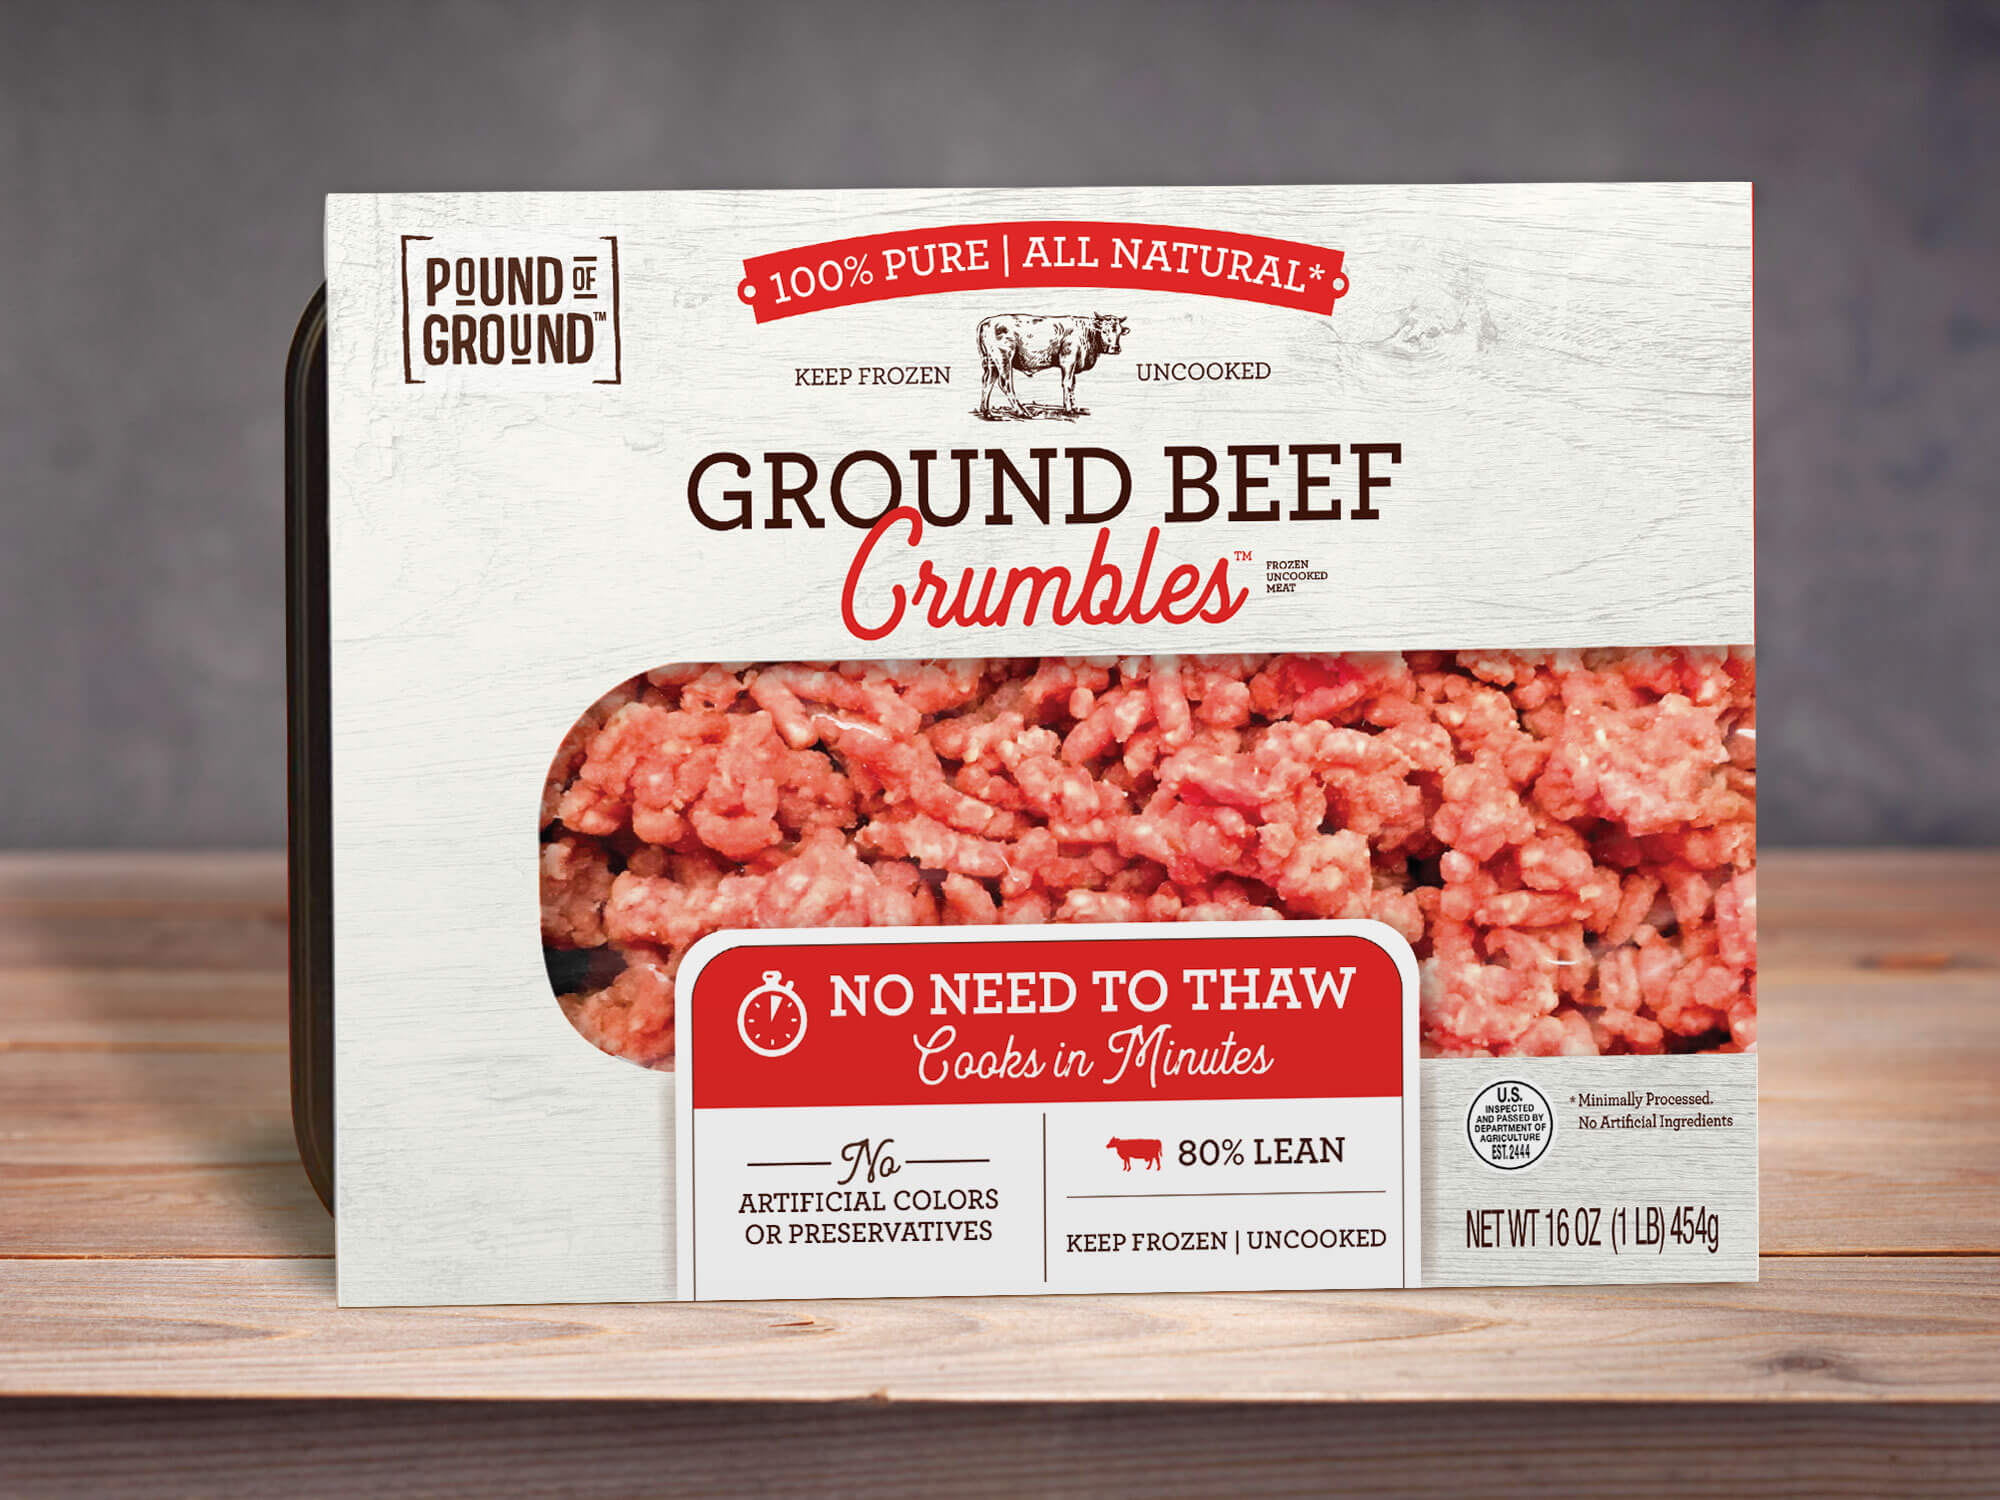 Final food packaging design emphasizes the ease of use for the consumer